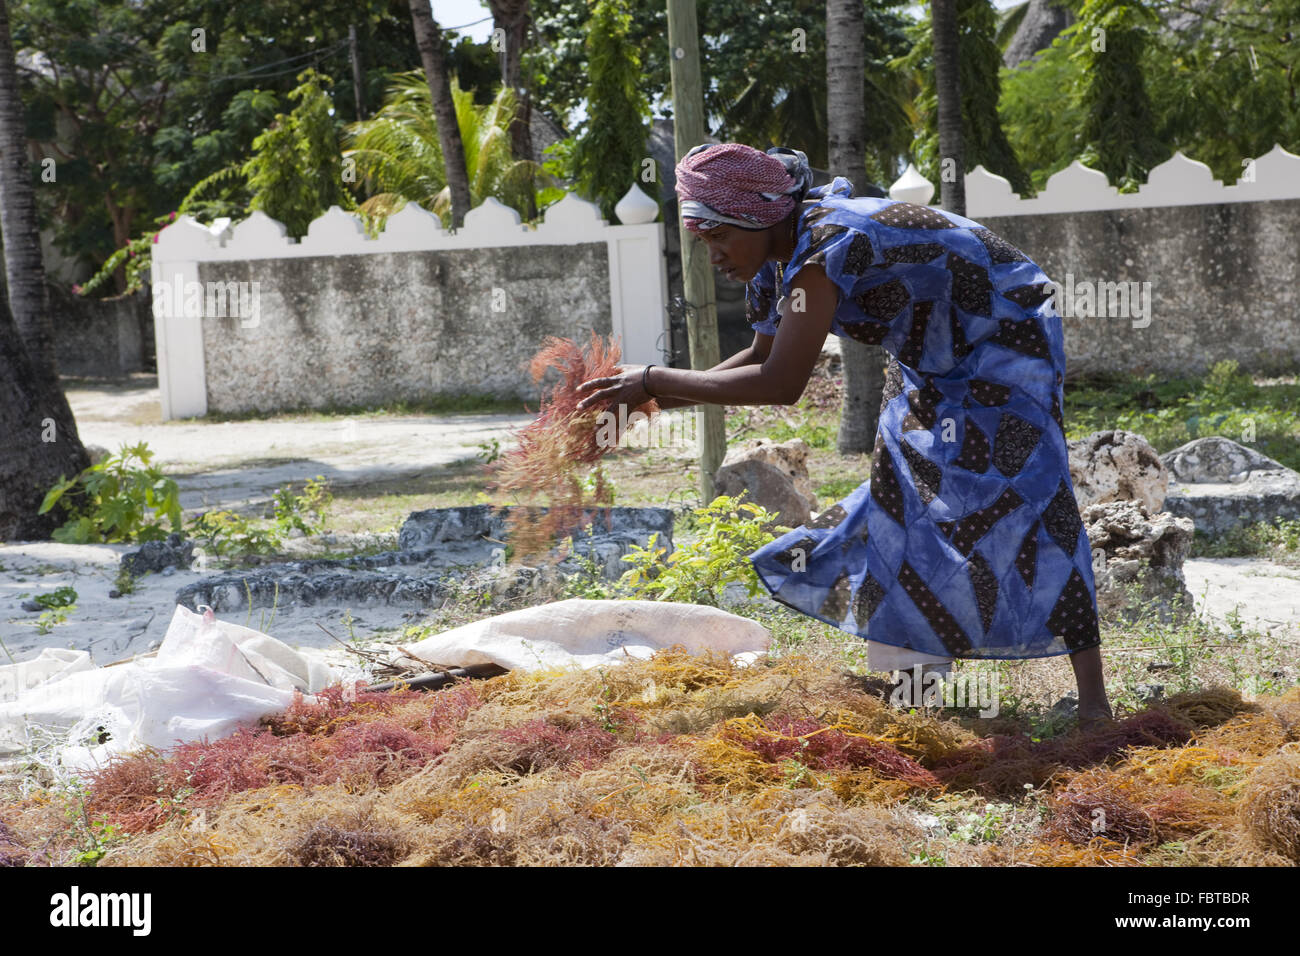 A woman worked to dry seaweed designed Stock Photo